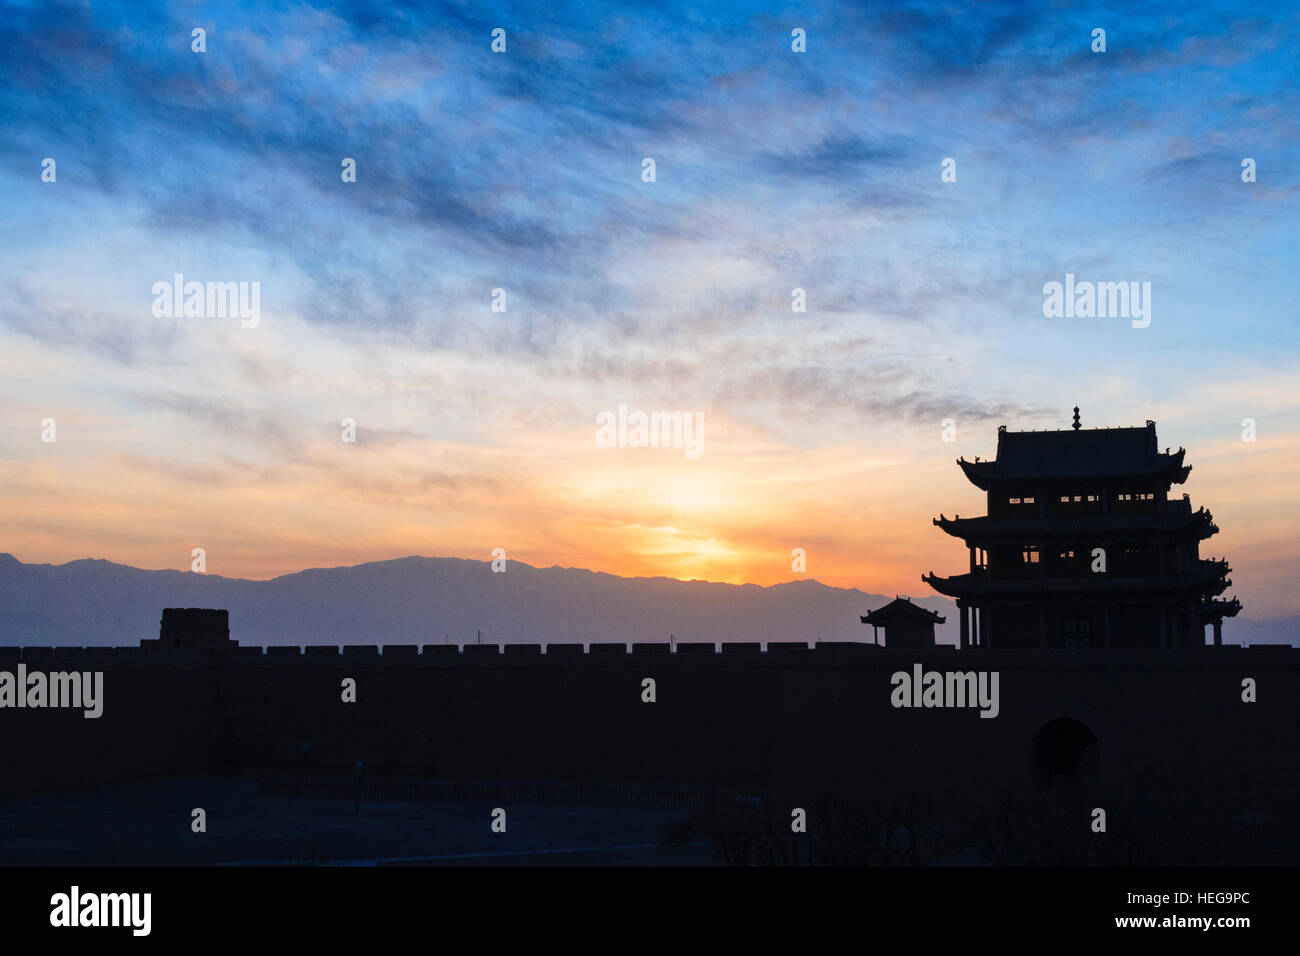 Jiayuguan fort at dusk at the western boundary of the Great Wall of China, Gansu province, China, Asia The pass - Stock Image